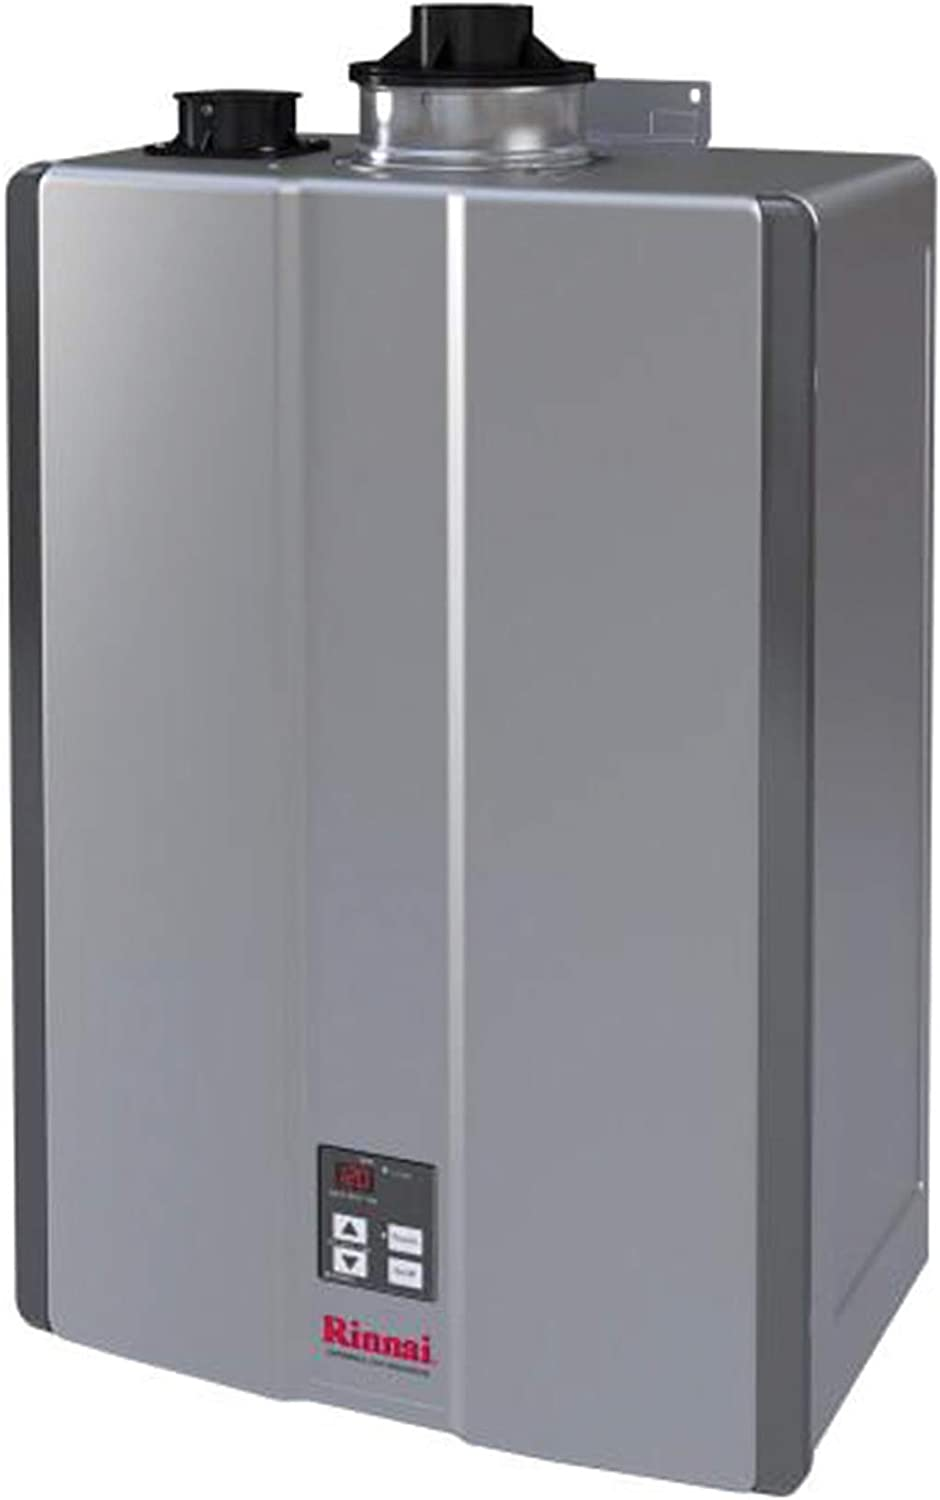 Rinnai RU180iN Sensei Super High Efficiency Tankless Water Heater, 10 GPM - Natural Gas: Indoor Installation